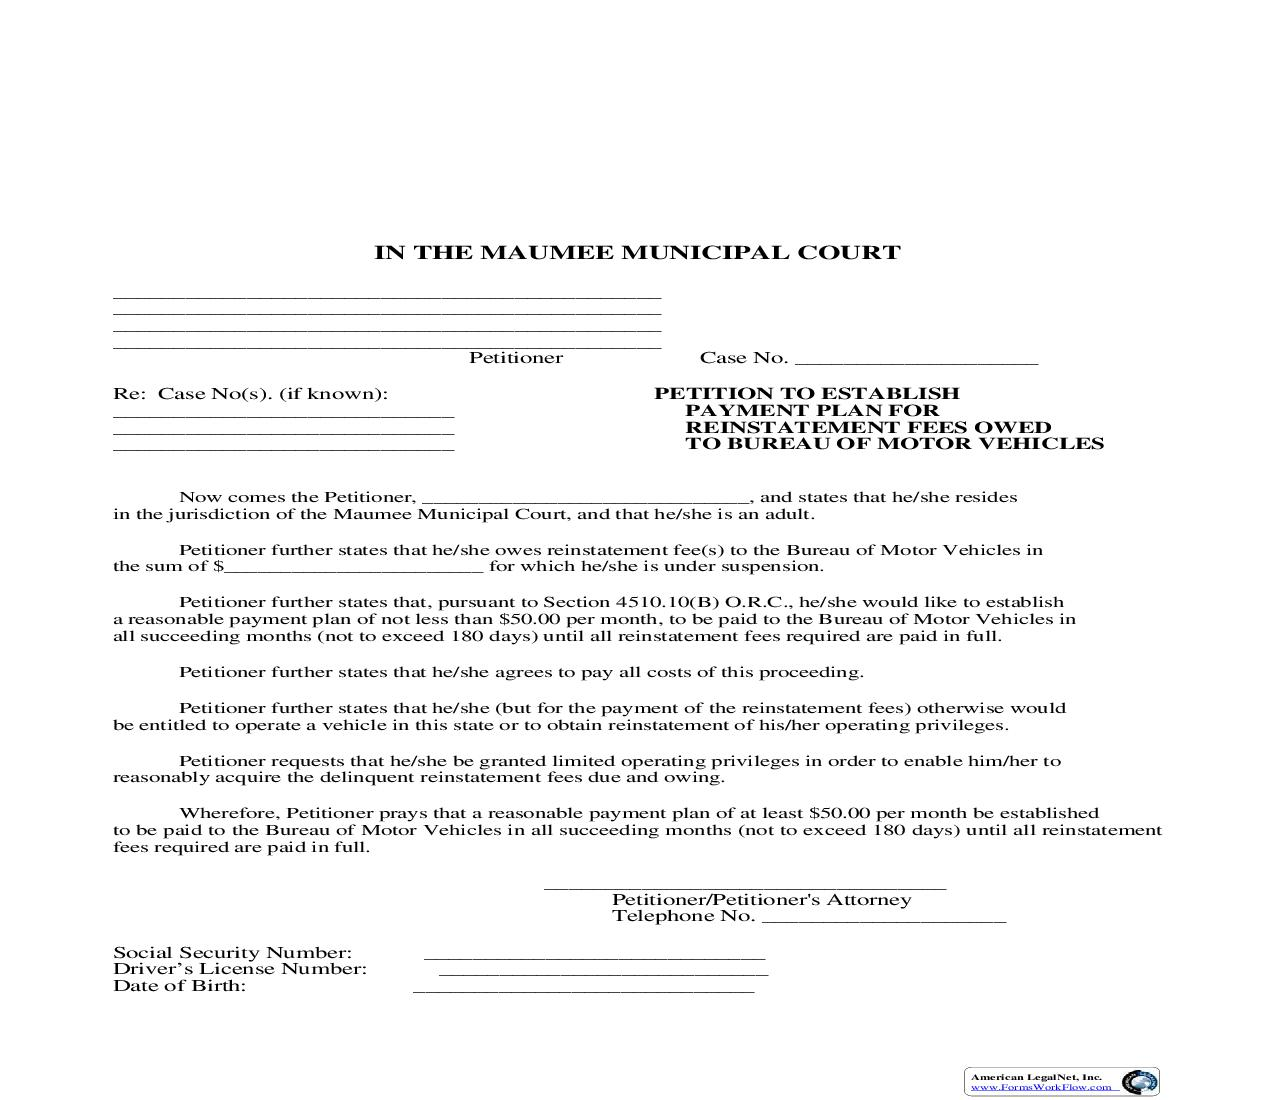 Petition To Establish Payment Plan For Reinstatement Fees Owned To Bureau Of Motor Vehicles | Pdf Fpdf Doc Docx | Ohio